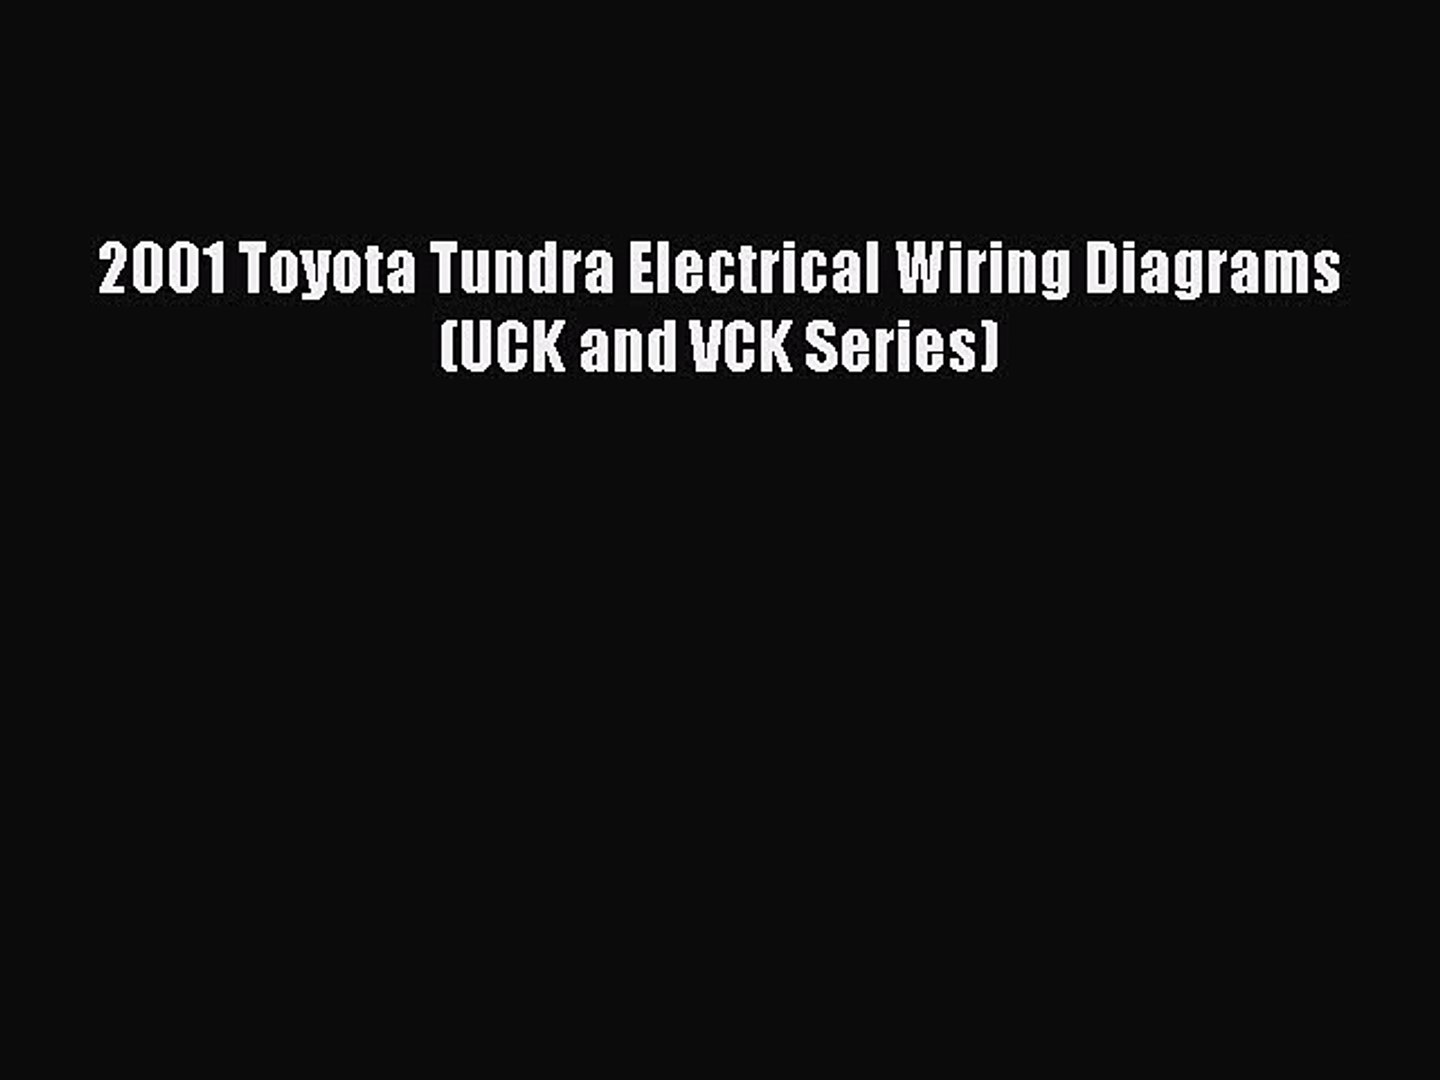 Electrical Wiring Diagram Toyotum Trundra